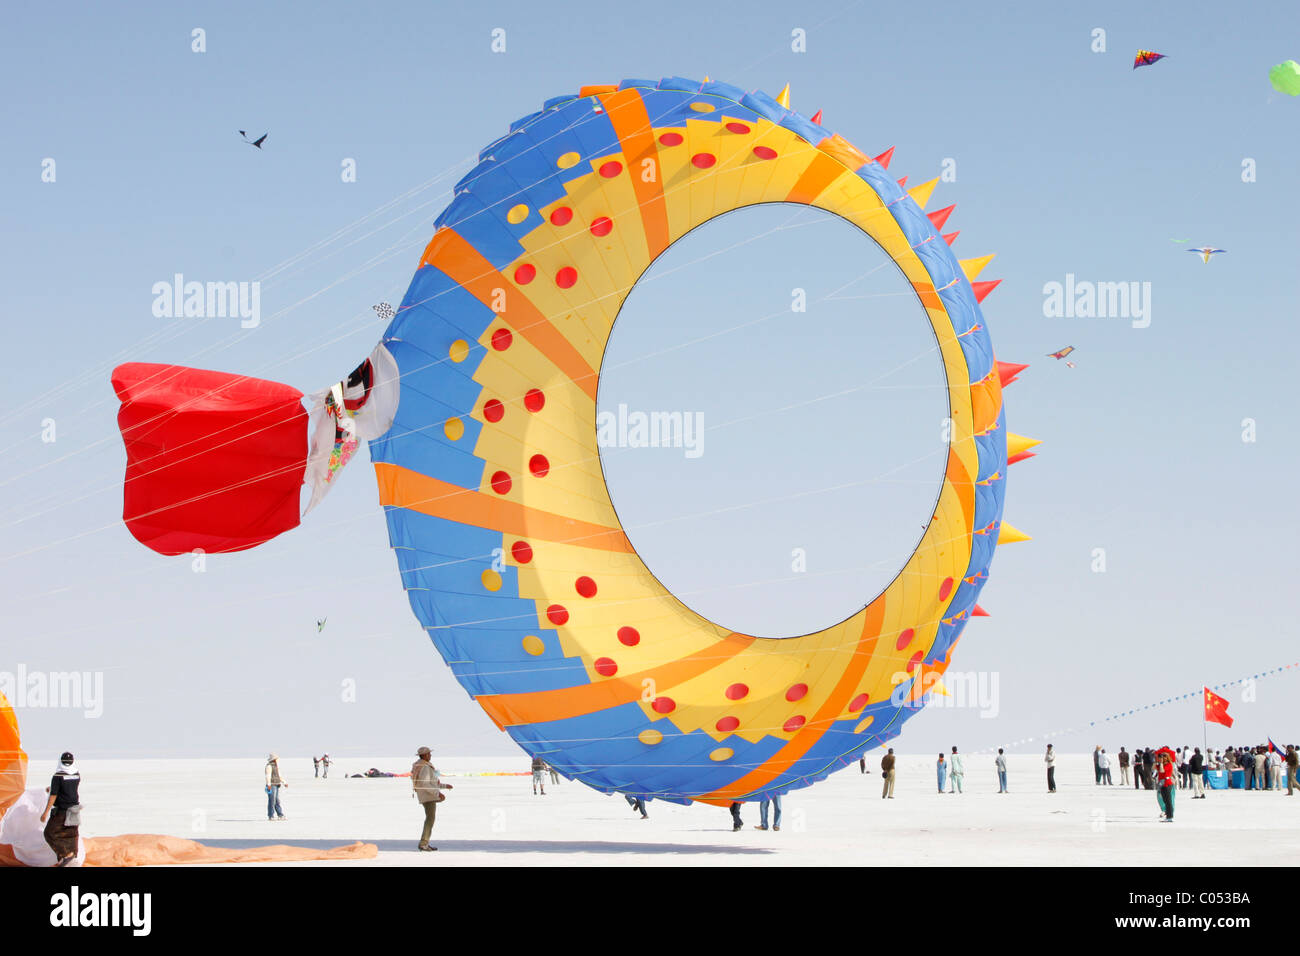 Kite festival in Rann of Kutch, Gujarat,India - Stock Image